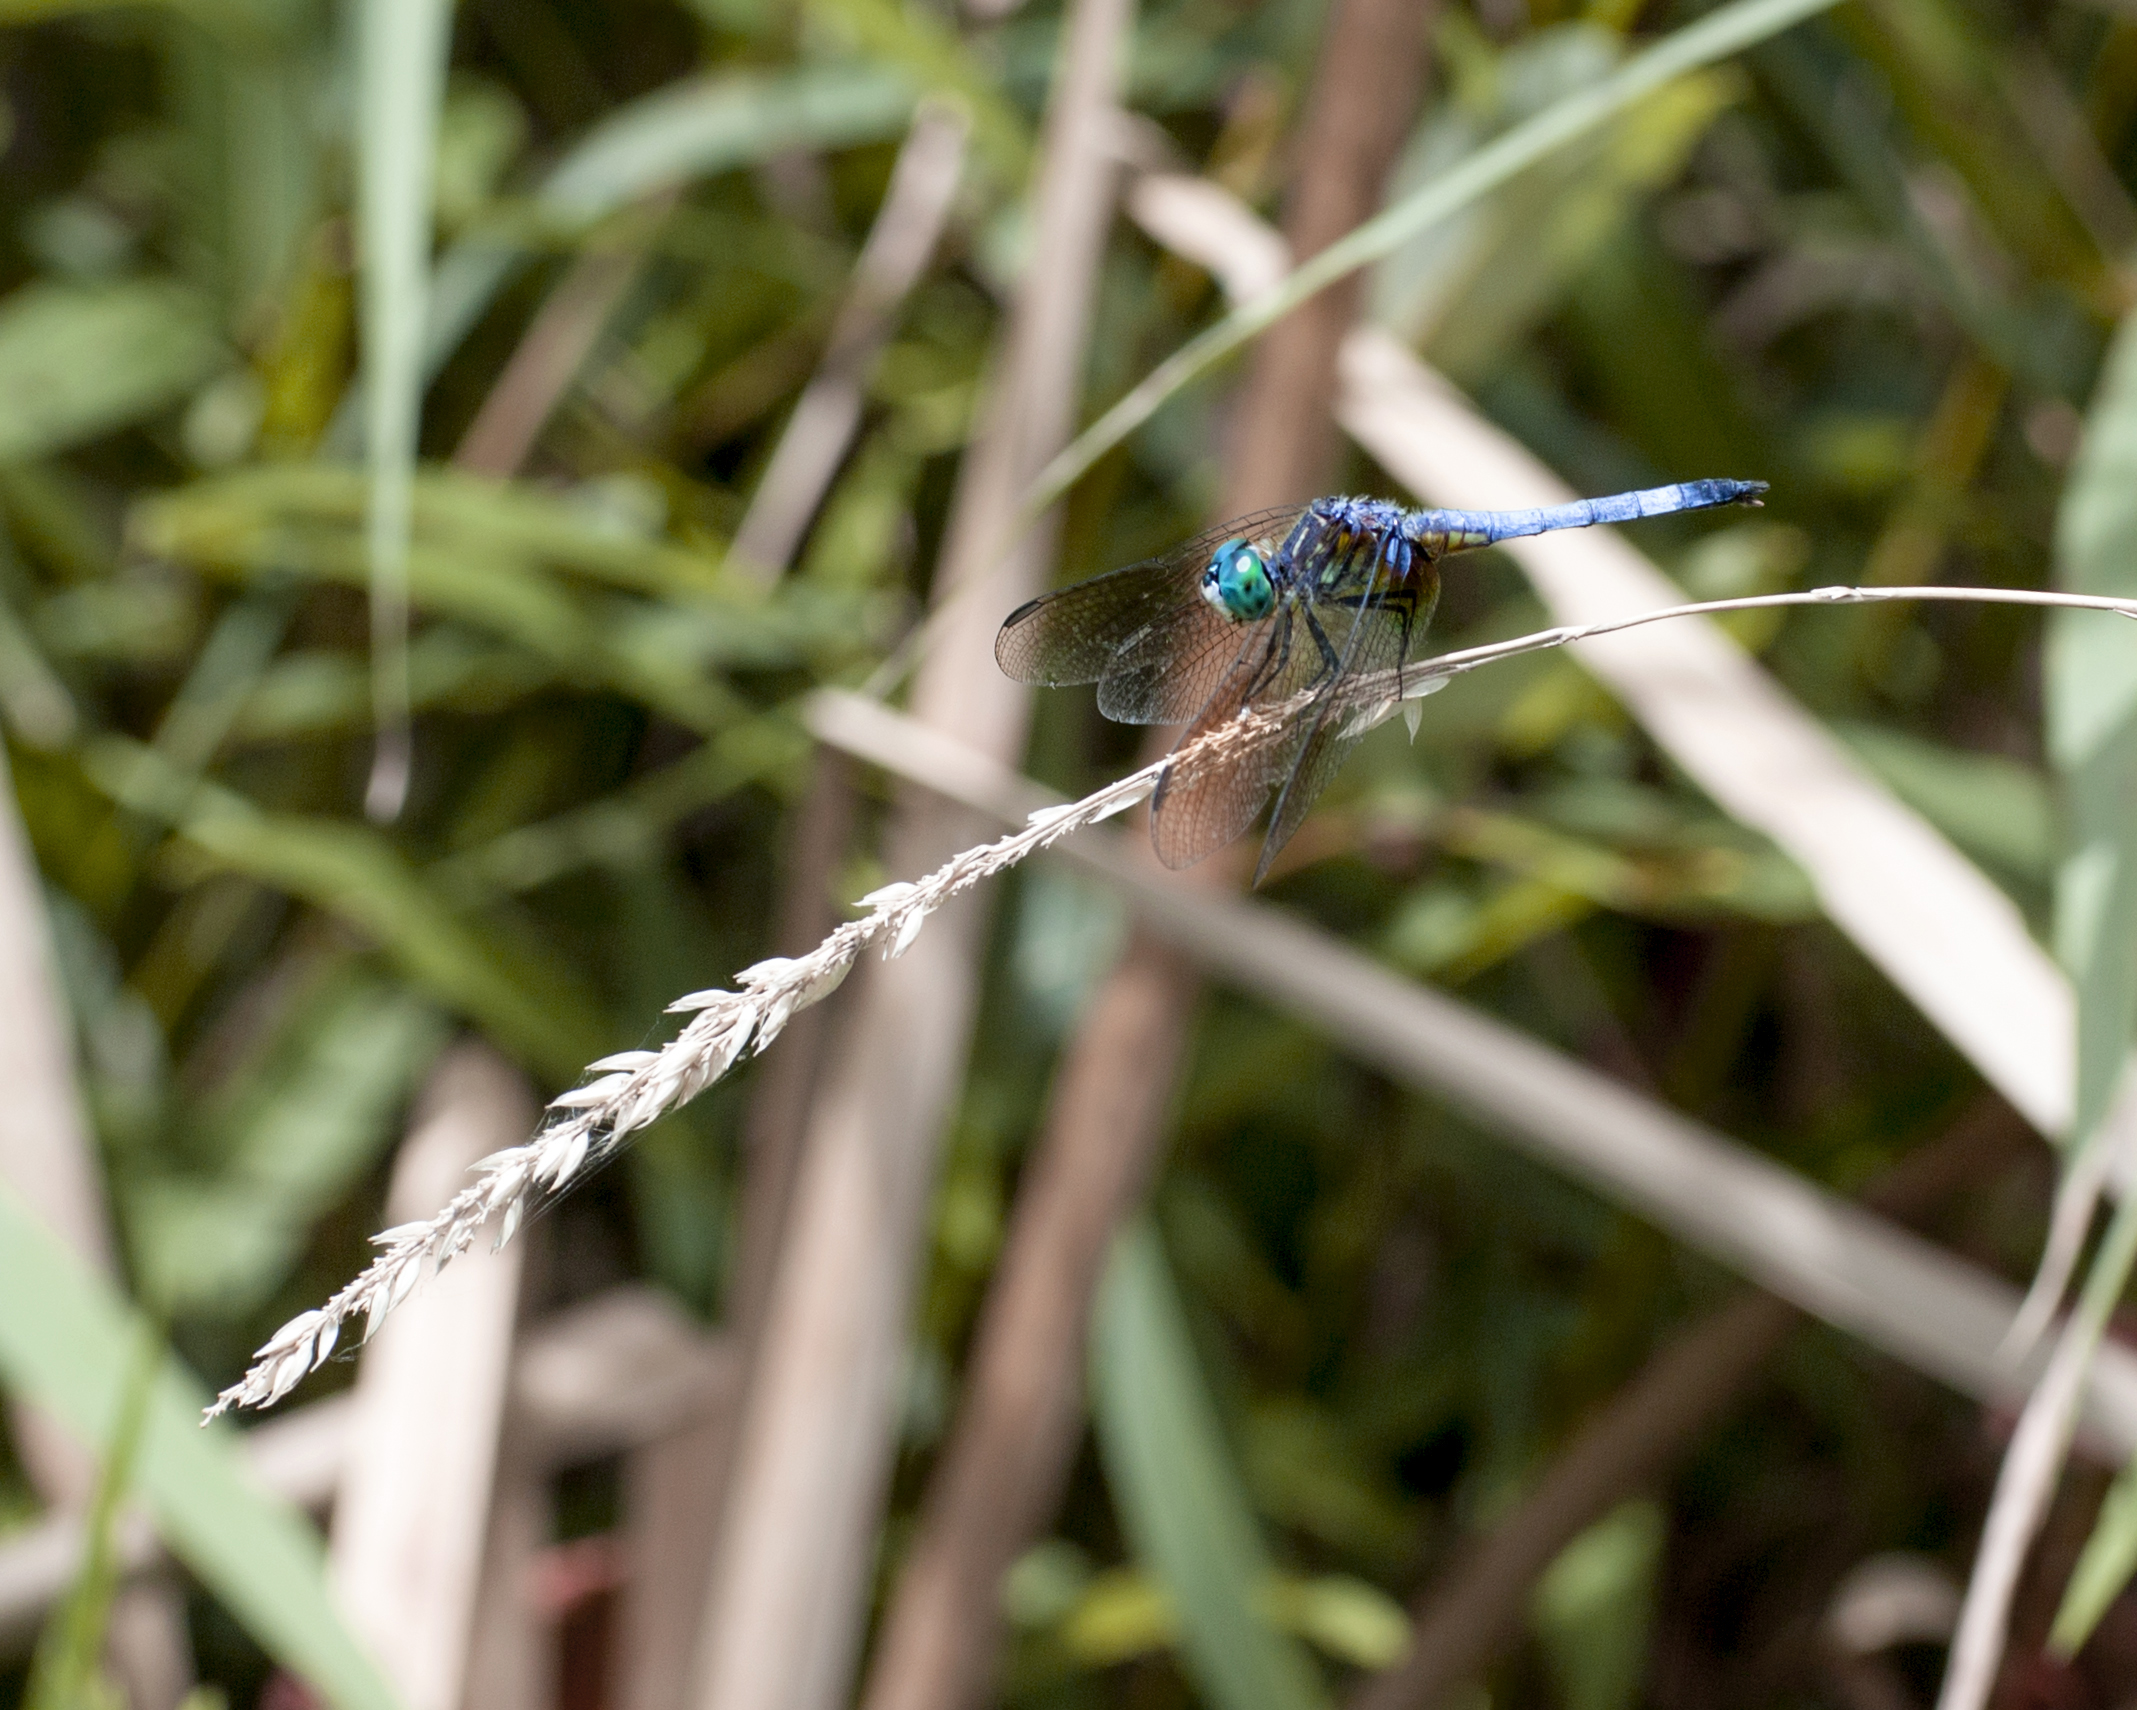 Grass bows under the weight of a blue dasher. Photo: Marty Murphy, AD